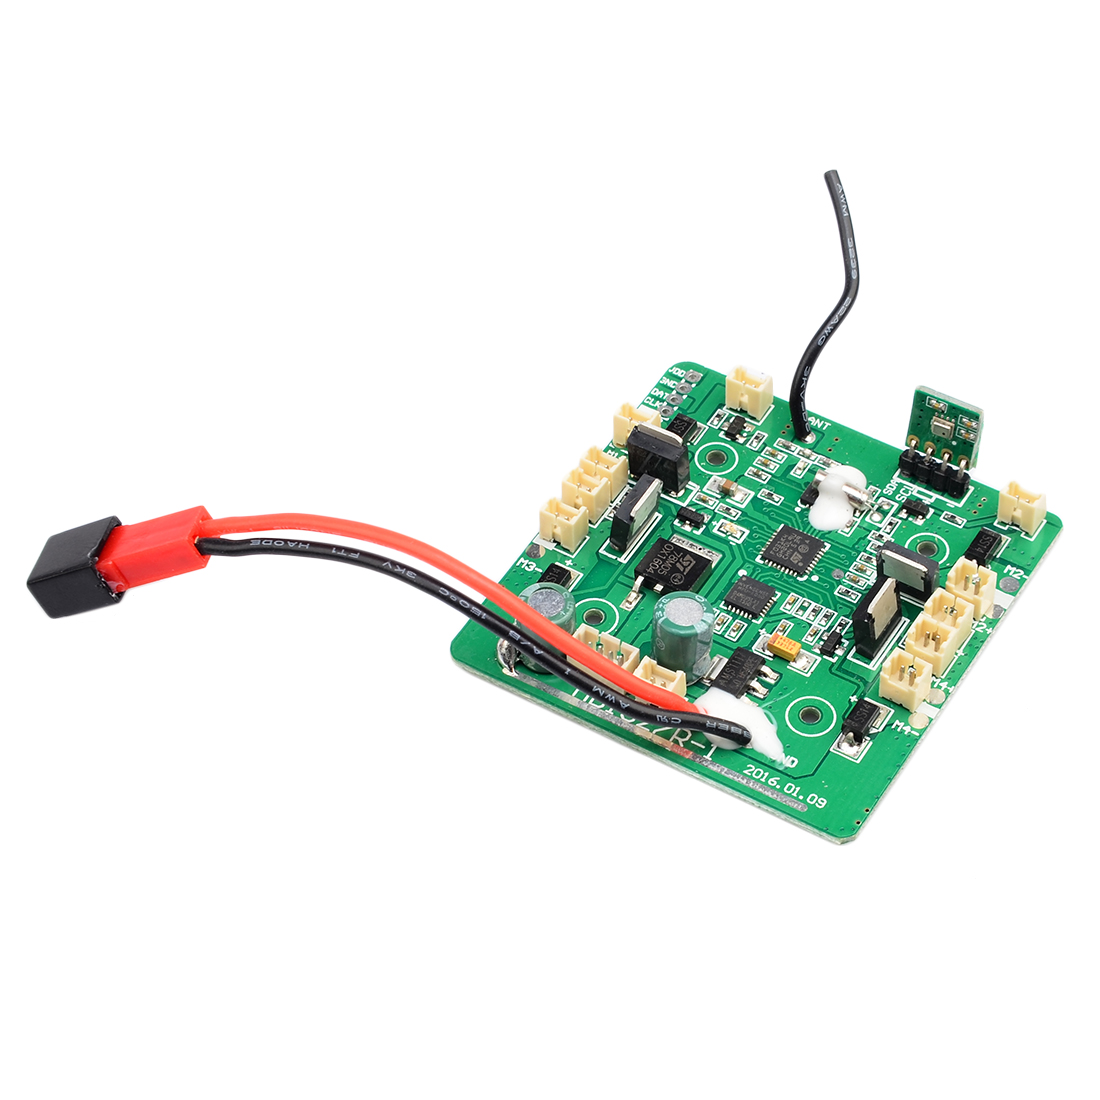 Mini RC Quadcopter Spare Parts Receiver Board Max 1327 RC Receiver Spare Parts Receiver Board for Helic Max 1327 mini rc quadcopter spare parts receiver board max 1327 rc receiver spare parts receiver board for helic max 1327